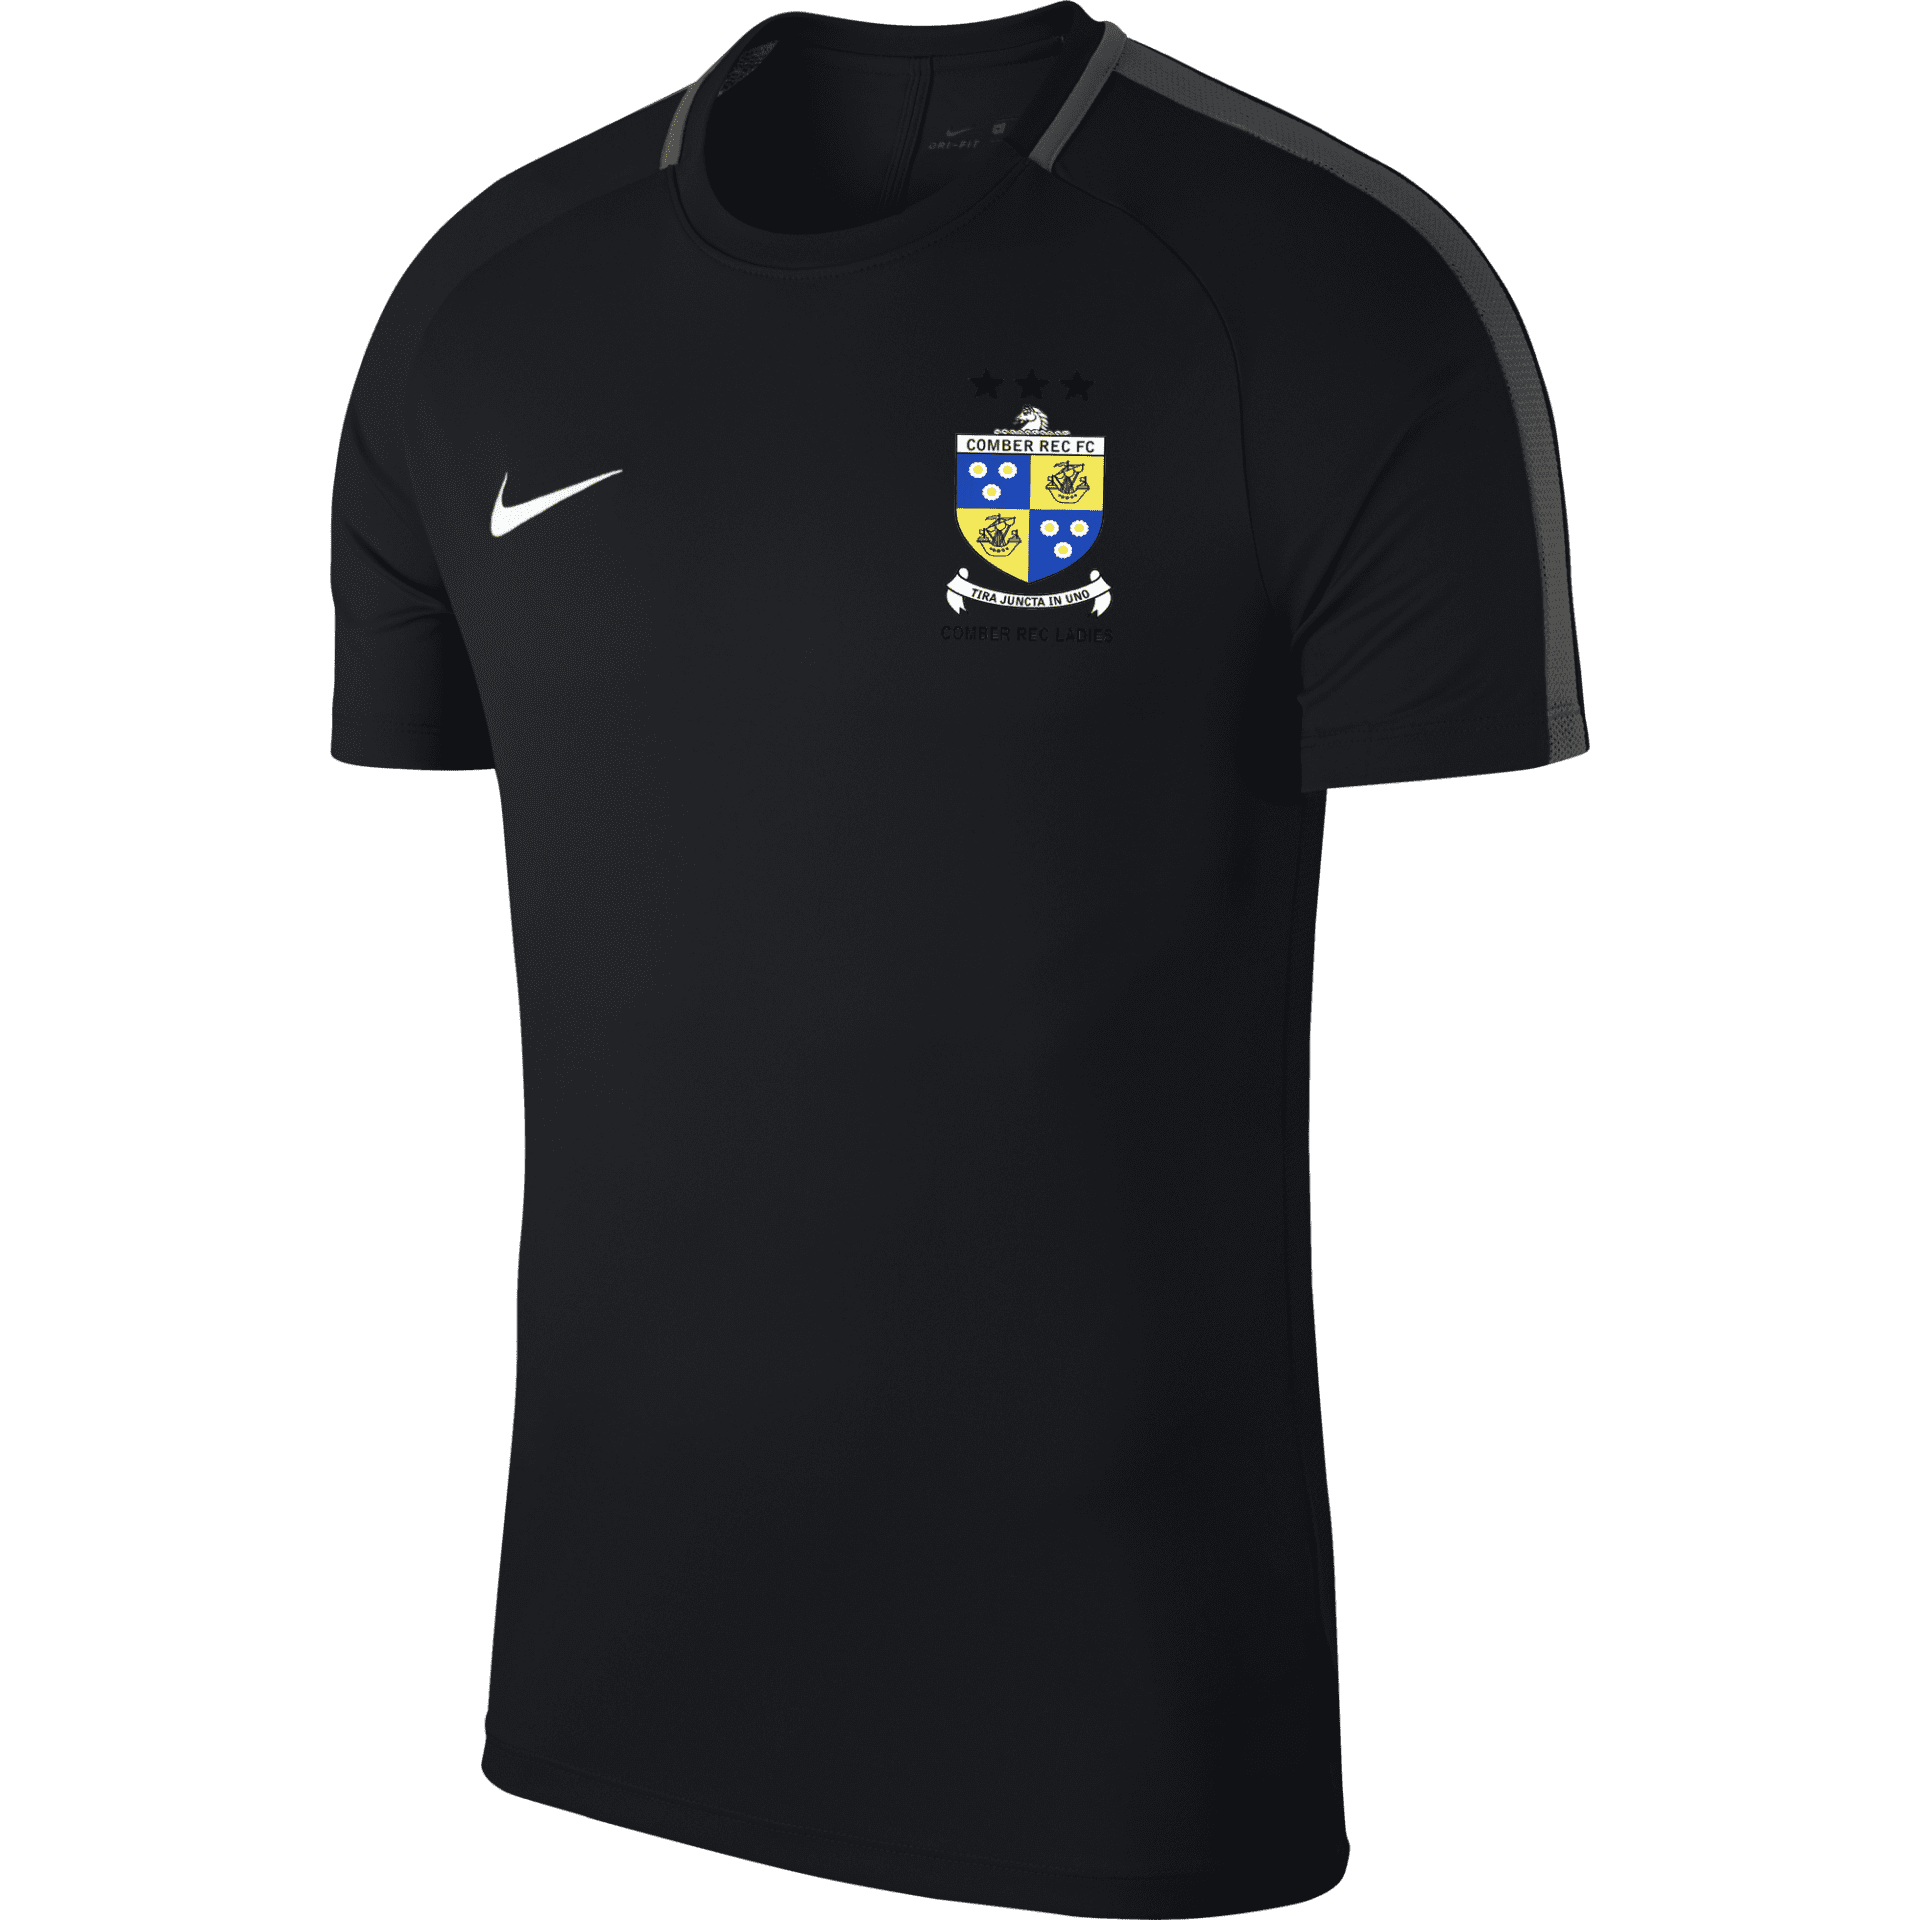 comber rec ladies academy tee black 34634 p